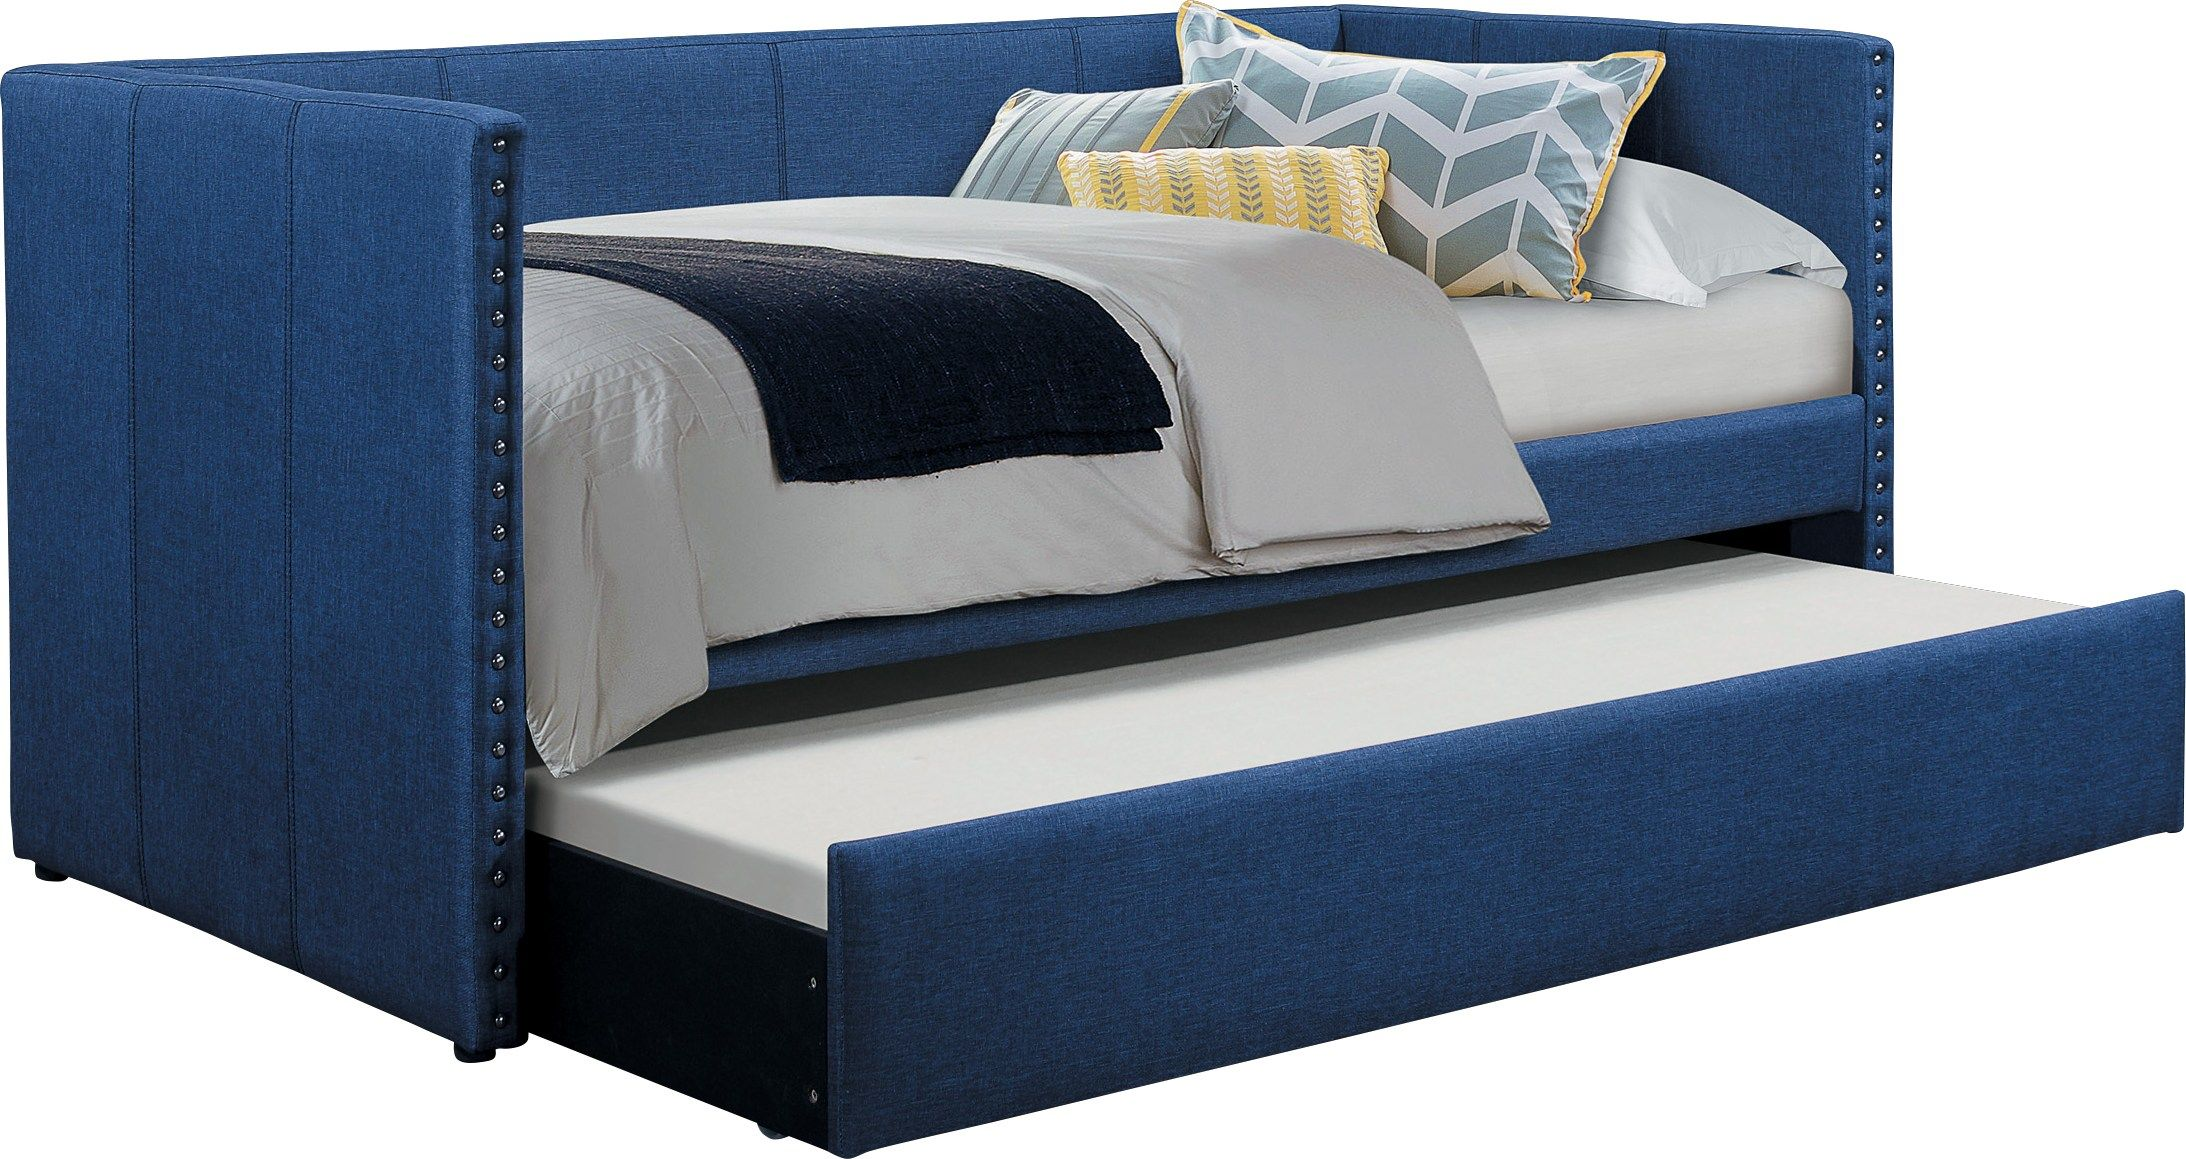 Sanford Way Blue Daybed With Trundle With Images Daybed With